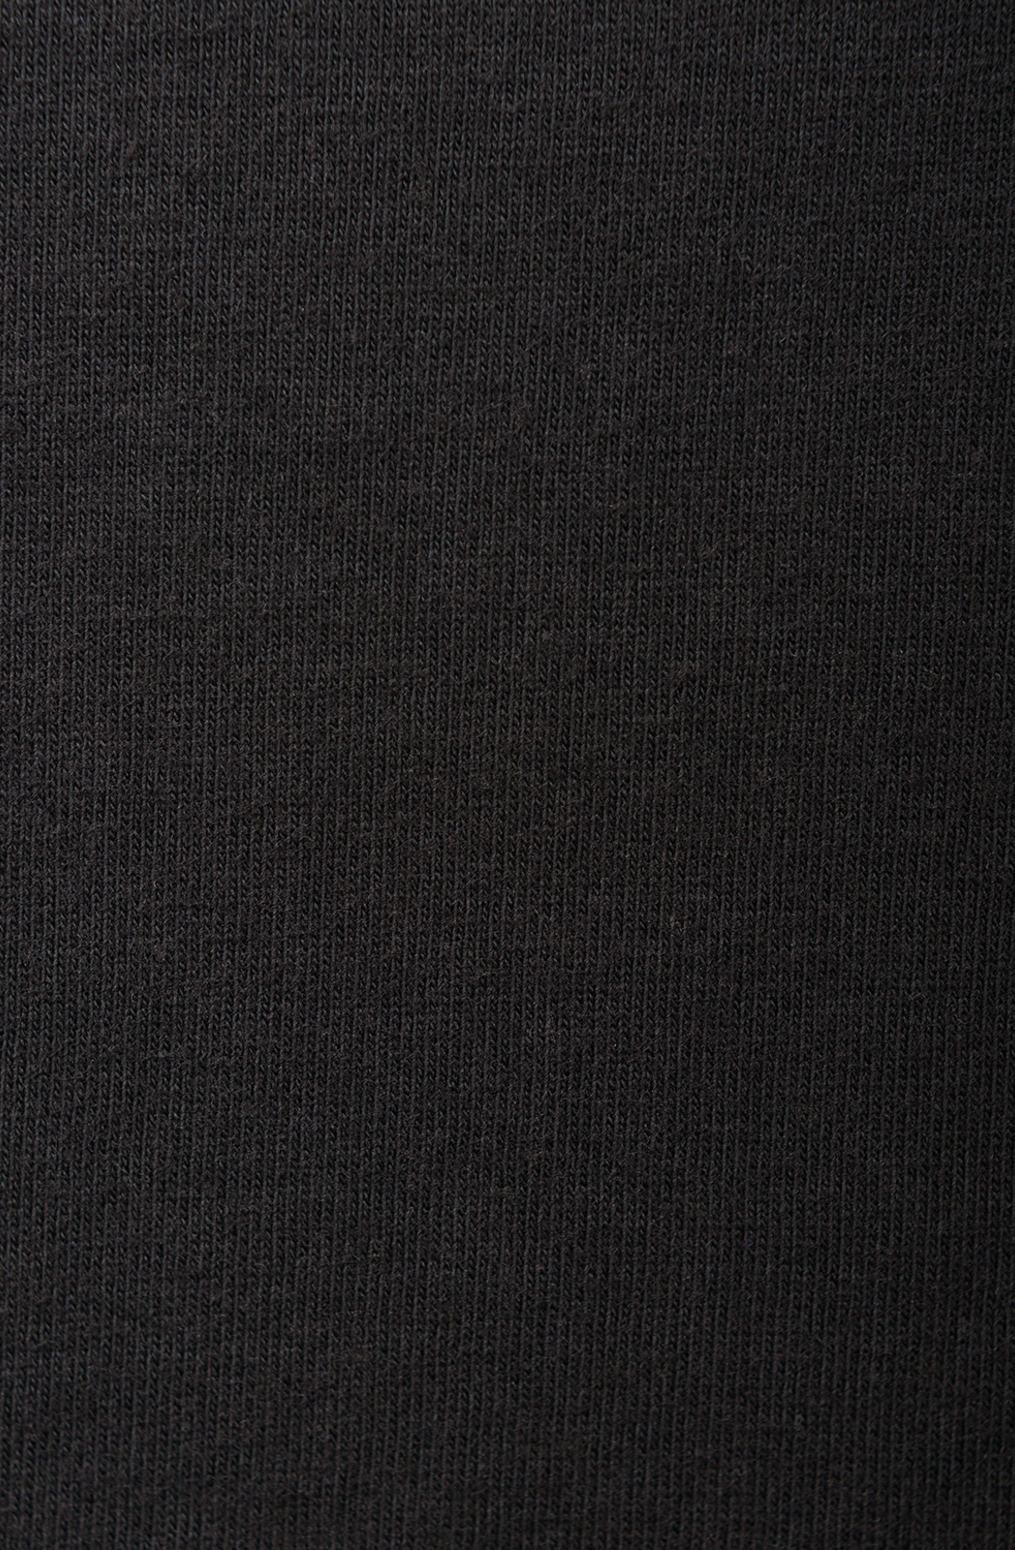 The school of making organic cotton jersey color fabric 2